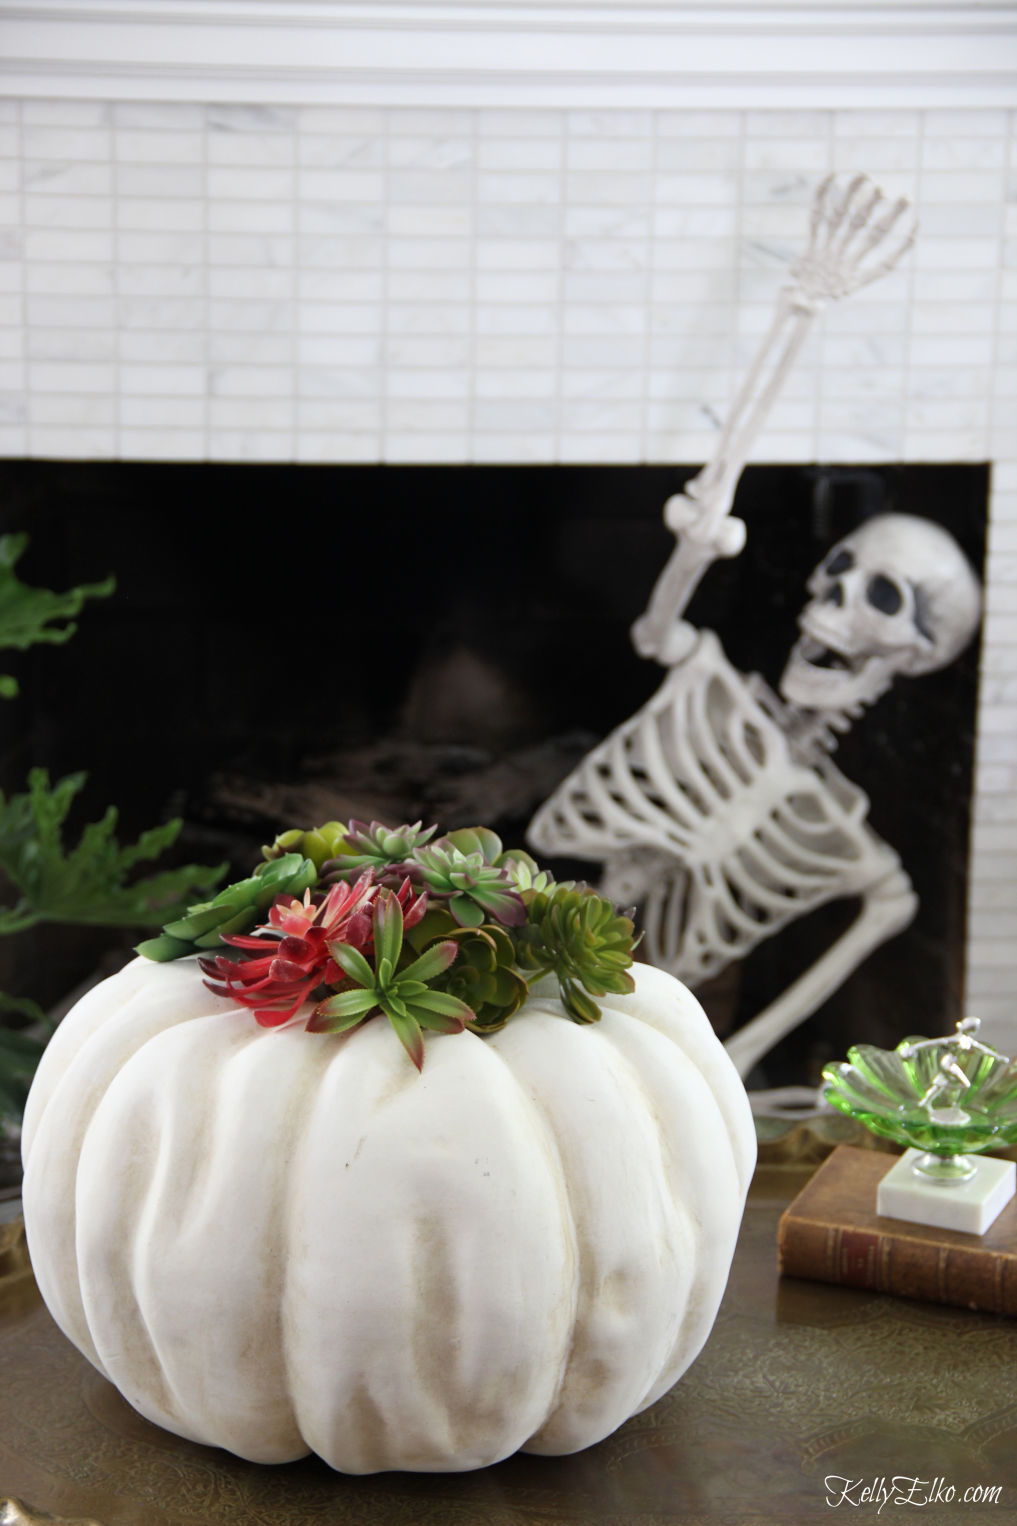 Love this Halloween home and the succulent pumpkin kellyelko.com #halloween #halloweendecor #halloweendecorations #skeleton #pumpkindecor #succulents